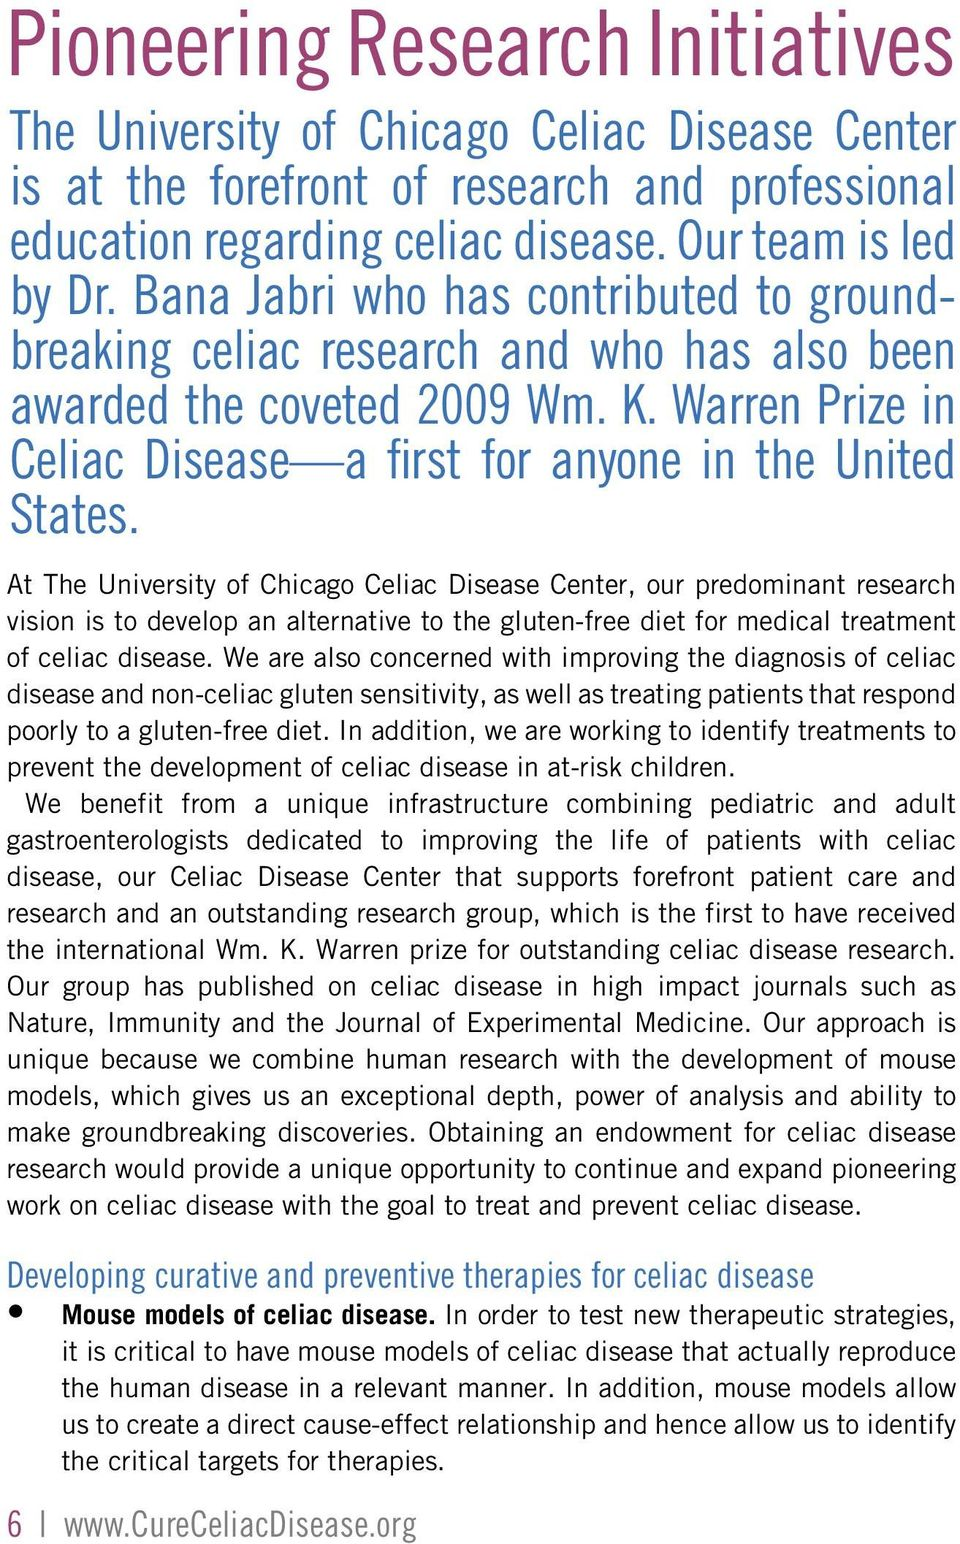 At The University of Chicago Celiac Disease Center, our predominant research vision is to develop an alternative to the gluten-free diet for medical treatment of celiac disease.